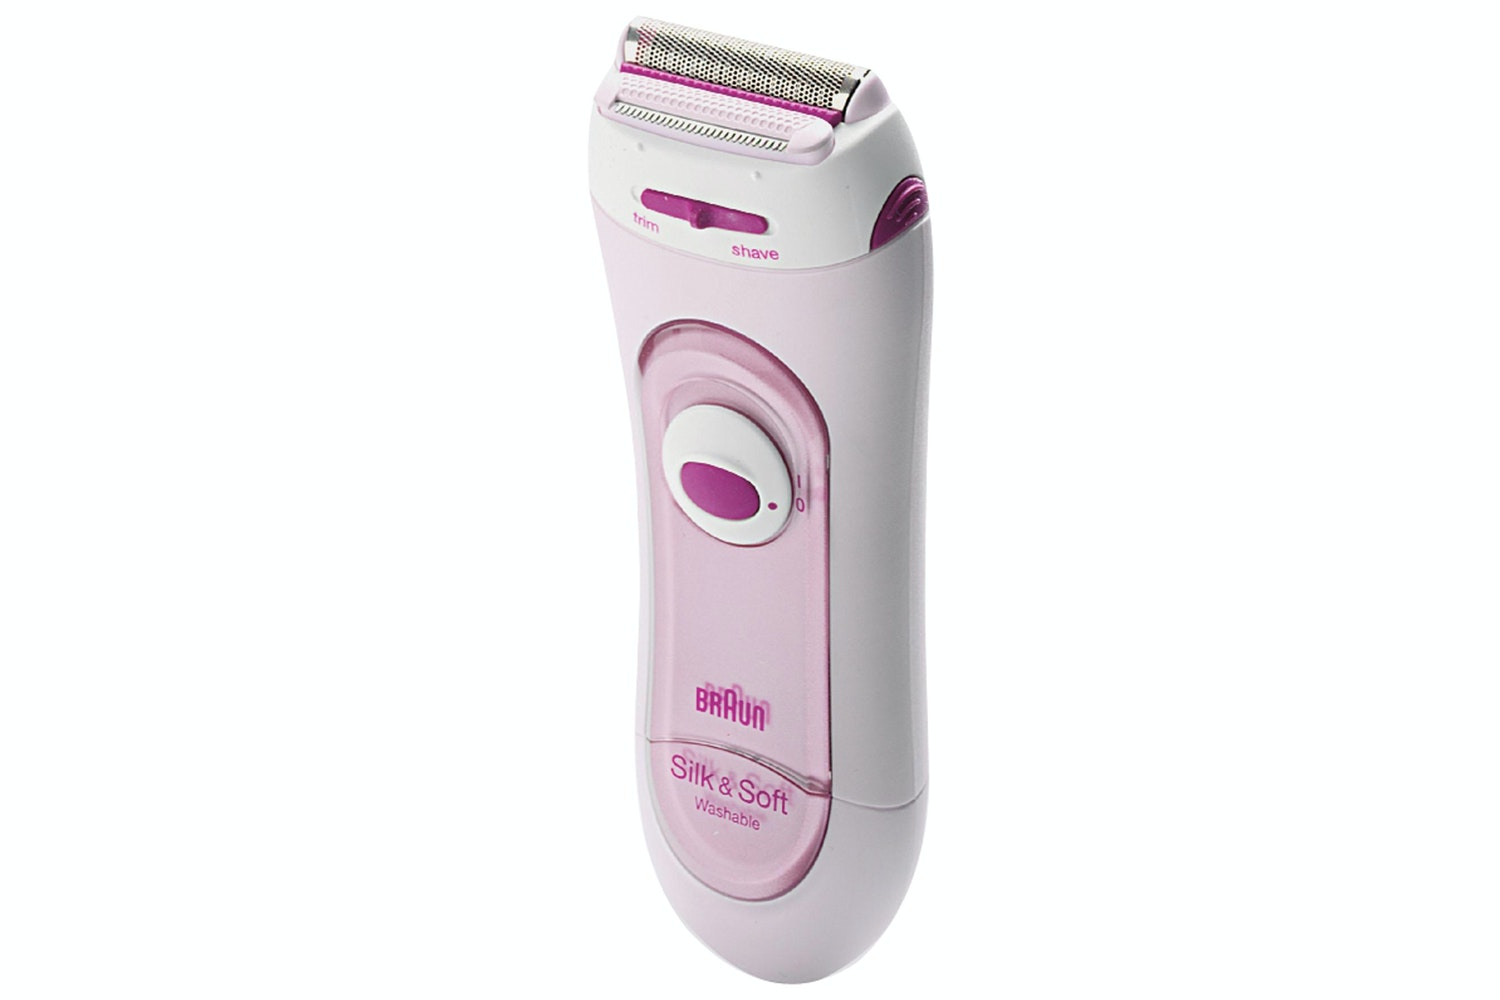 Braun Silk & Soft Ladies Battery Operated Electric Shaver